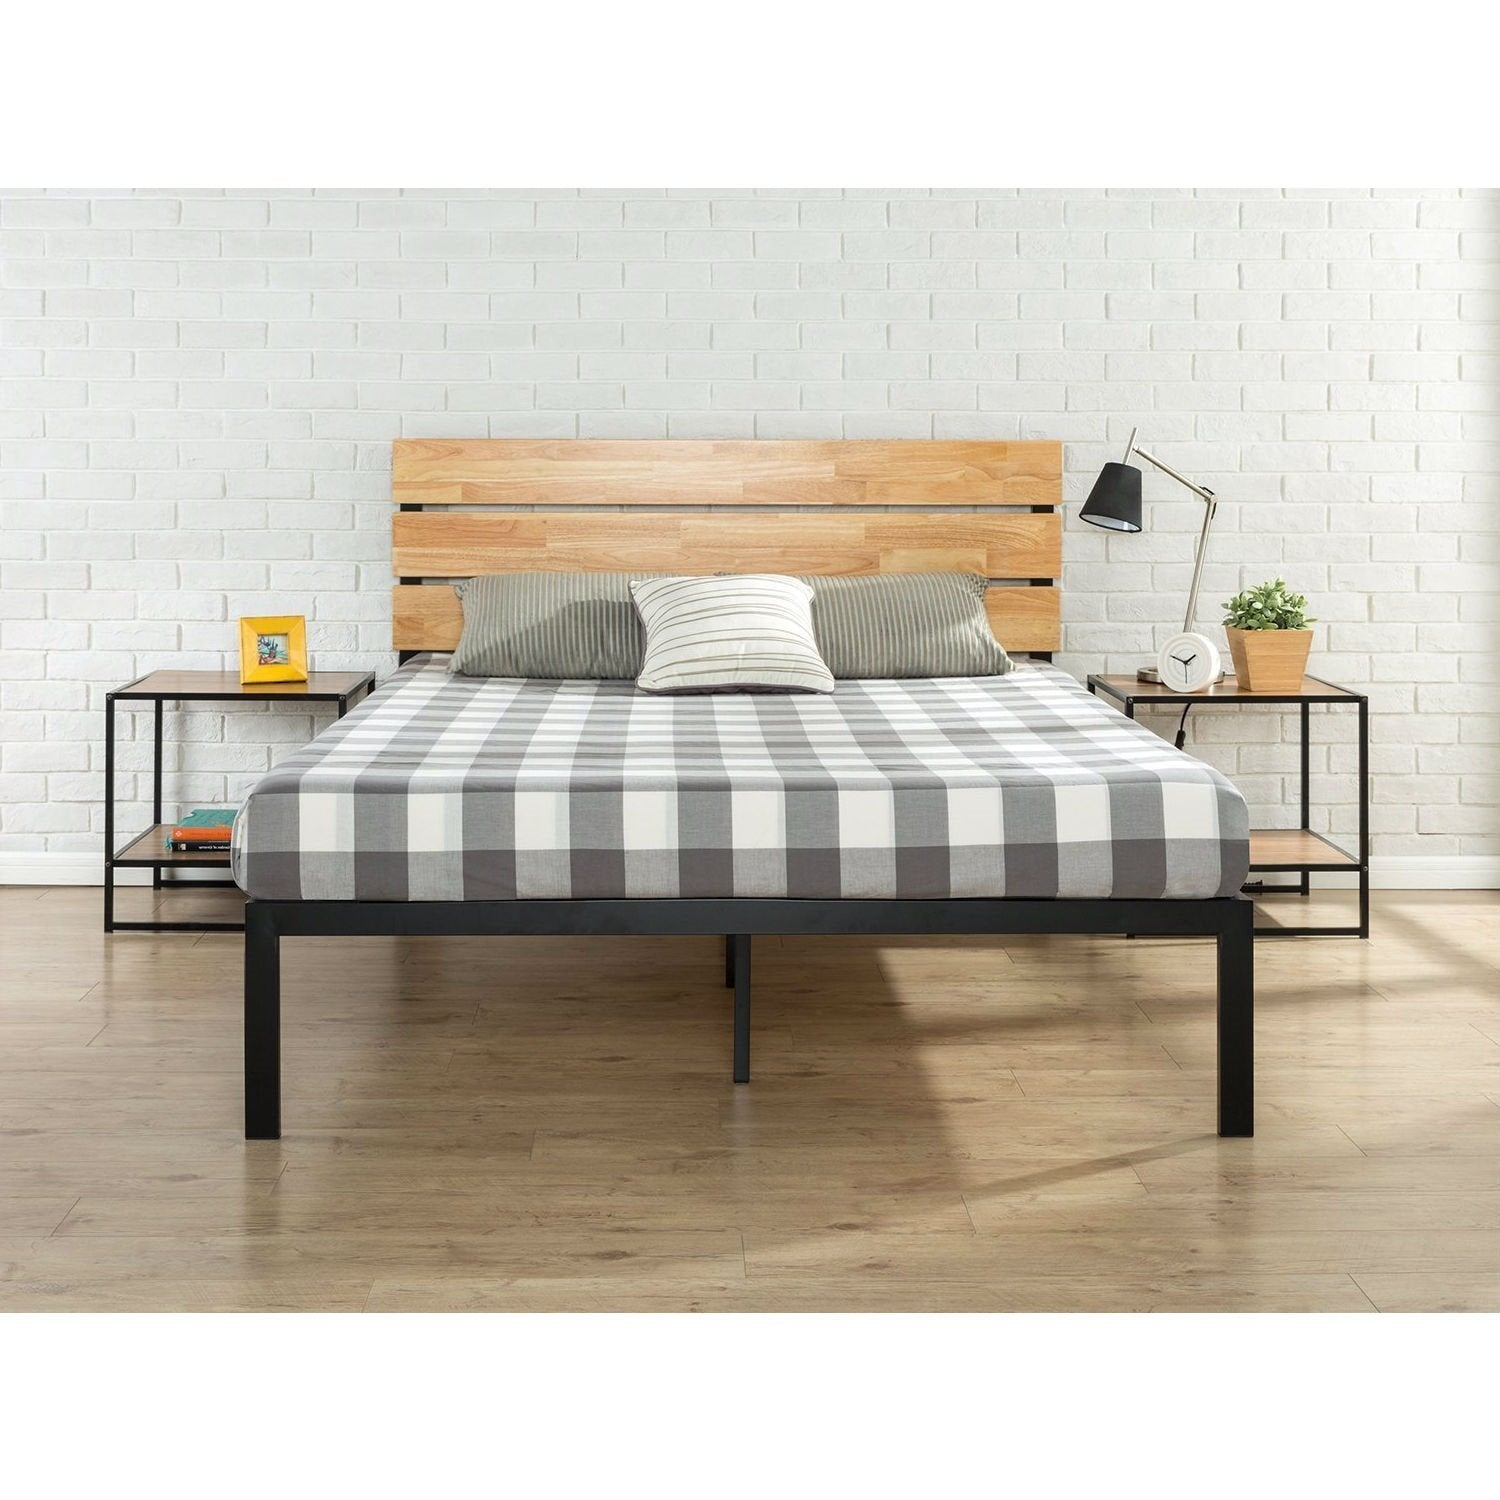 King size Modern Metal Platform Bed Frame with Wood Headboard and Slats.